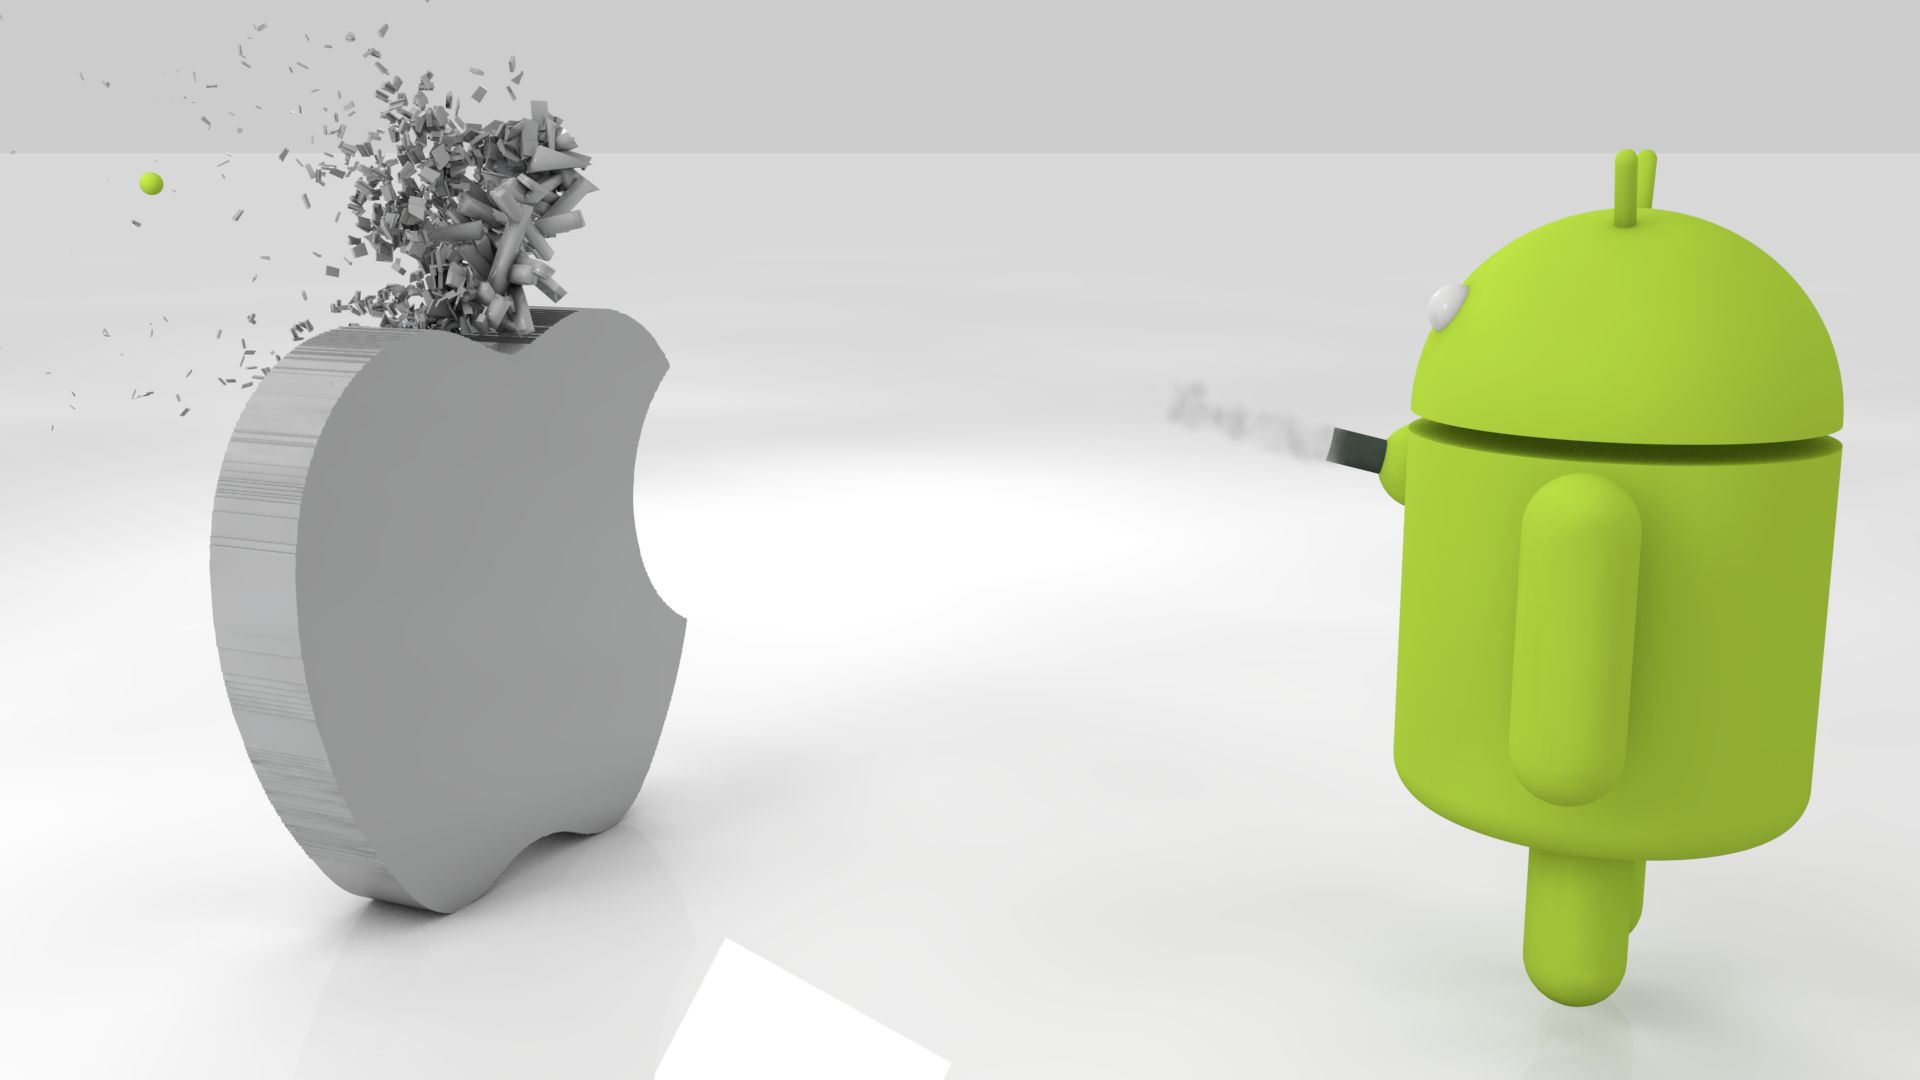 Apple Vs Android Wallpaper Awesome Pictures 14b652m2 Yoanu 1920x1080